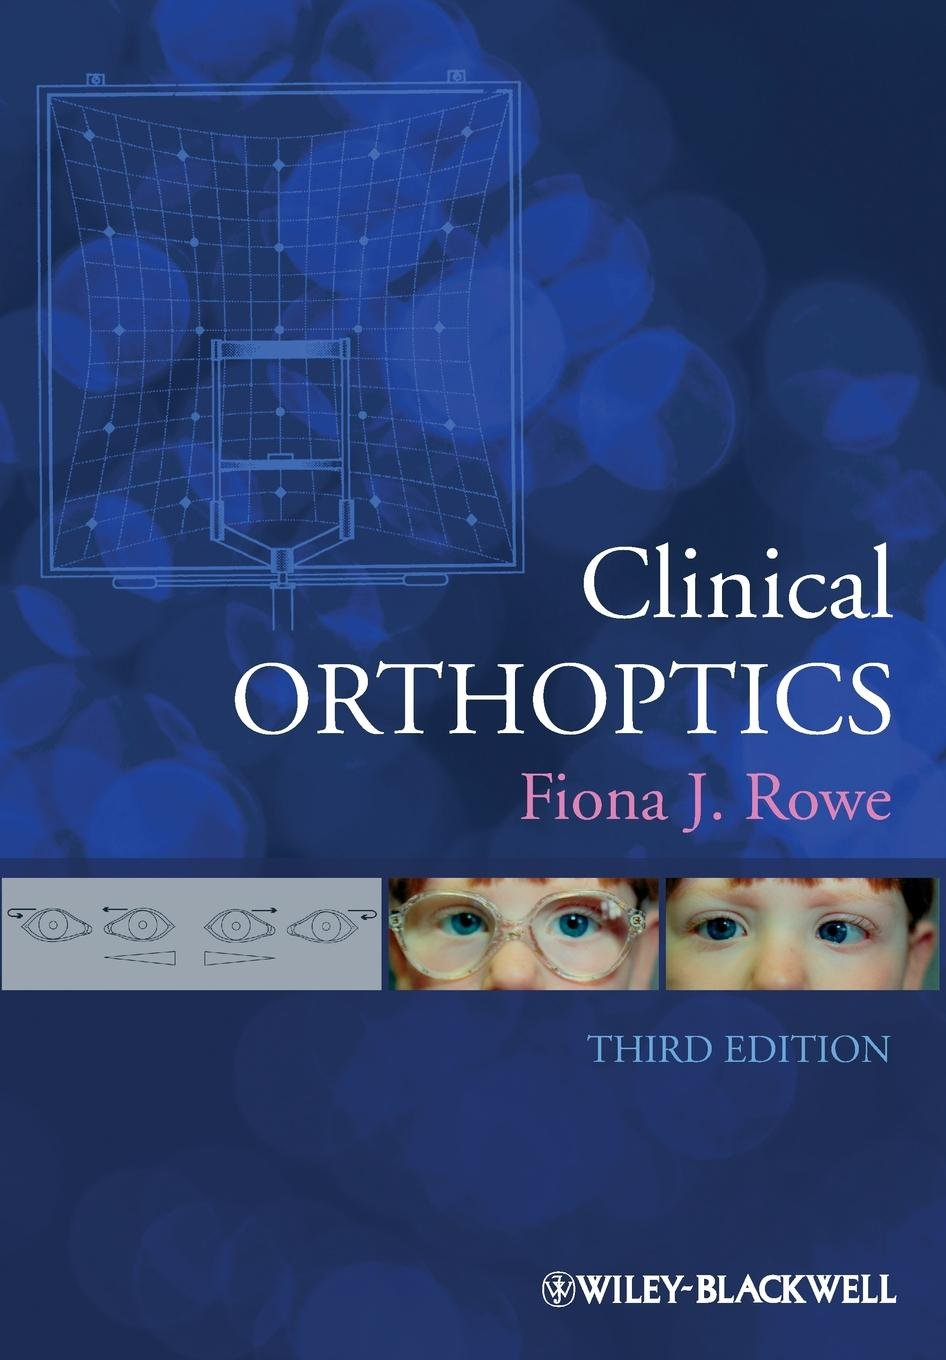 Clinical Orthoptics 3e